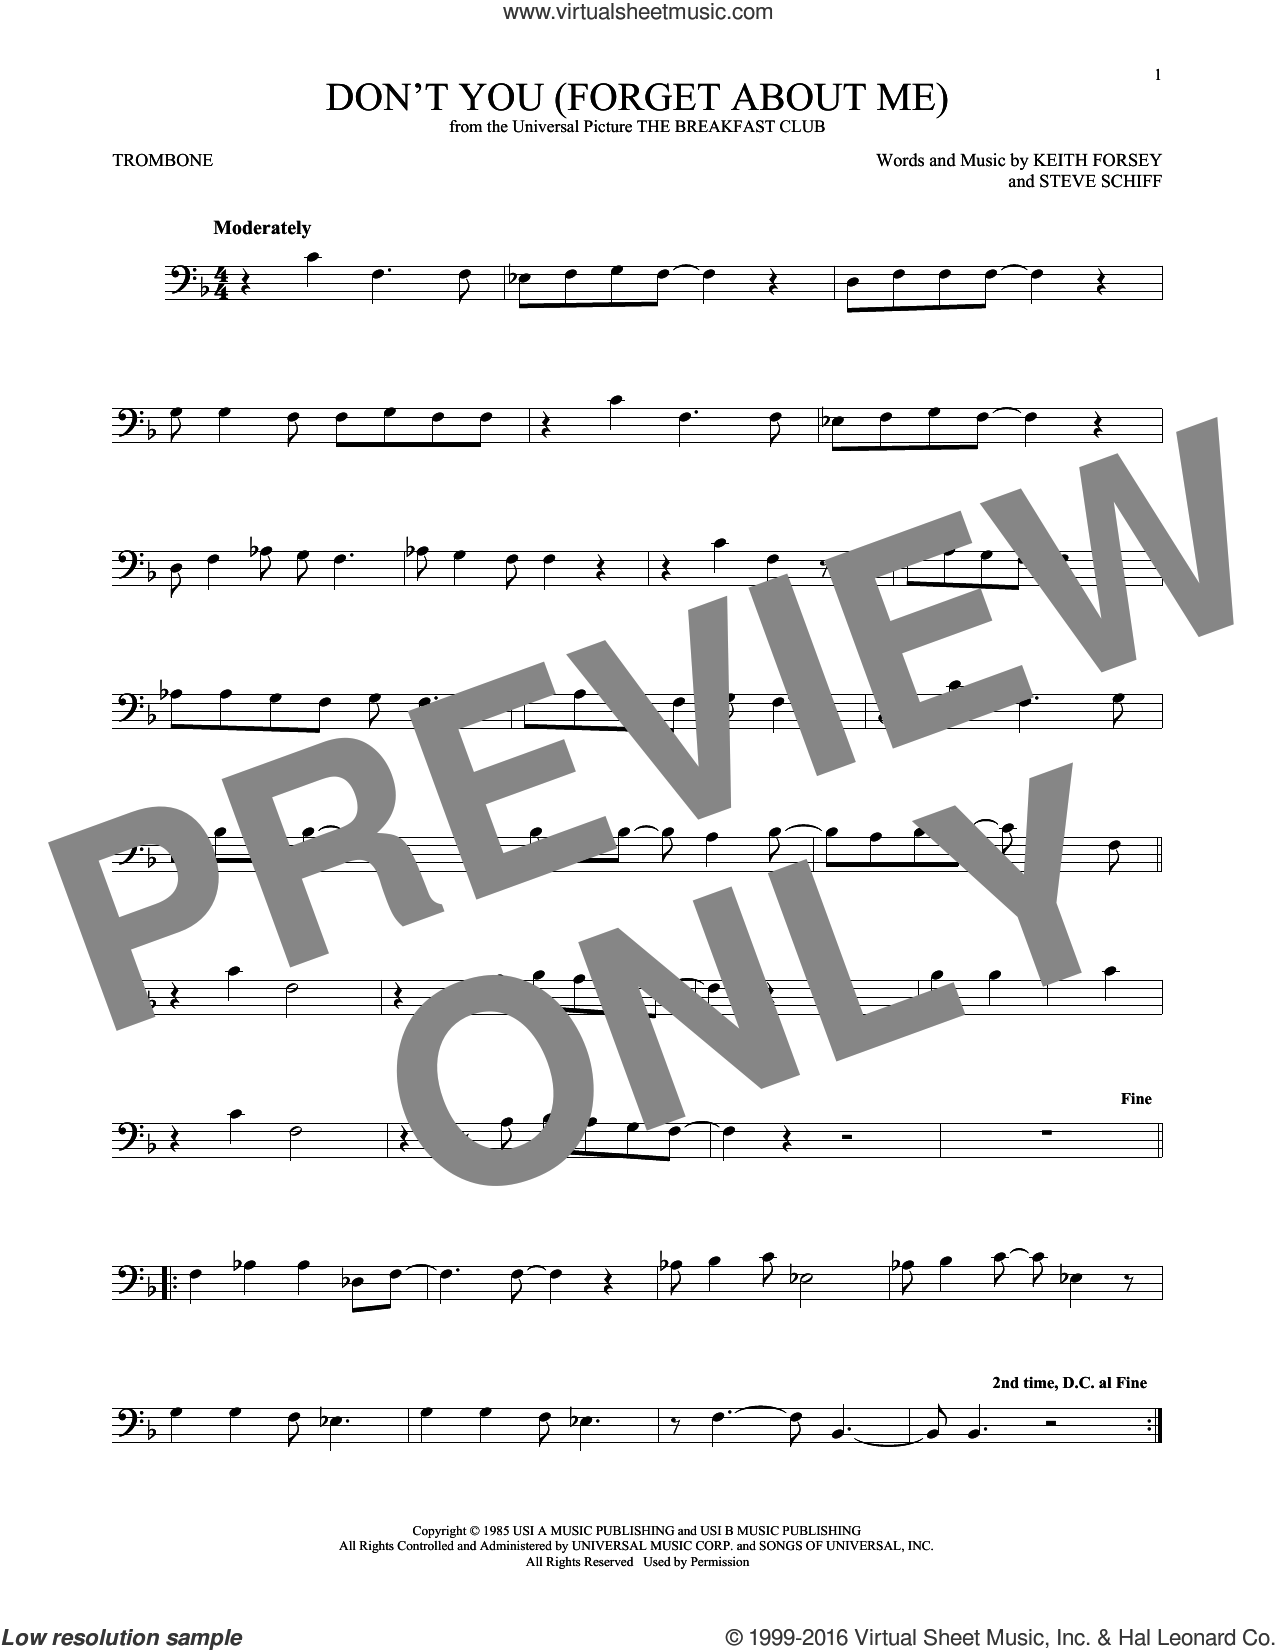 Don't You (Forget About Me) sheet music for trombone solo by Simple Minds, Hawk Nelson, Keith Forsey and Steve Schiff, intermediate skill level